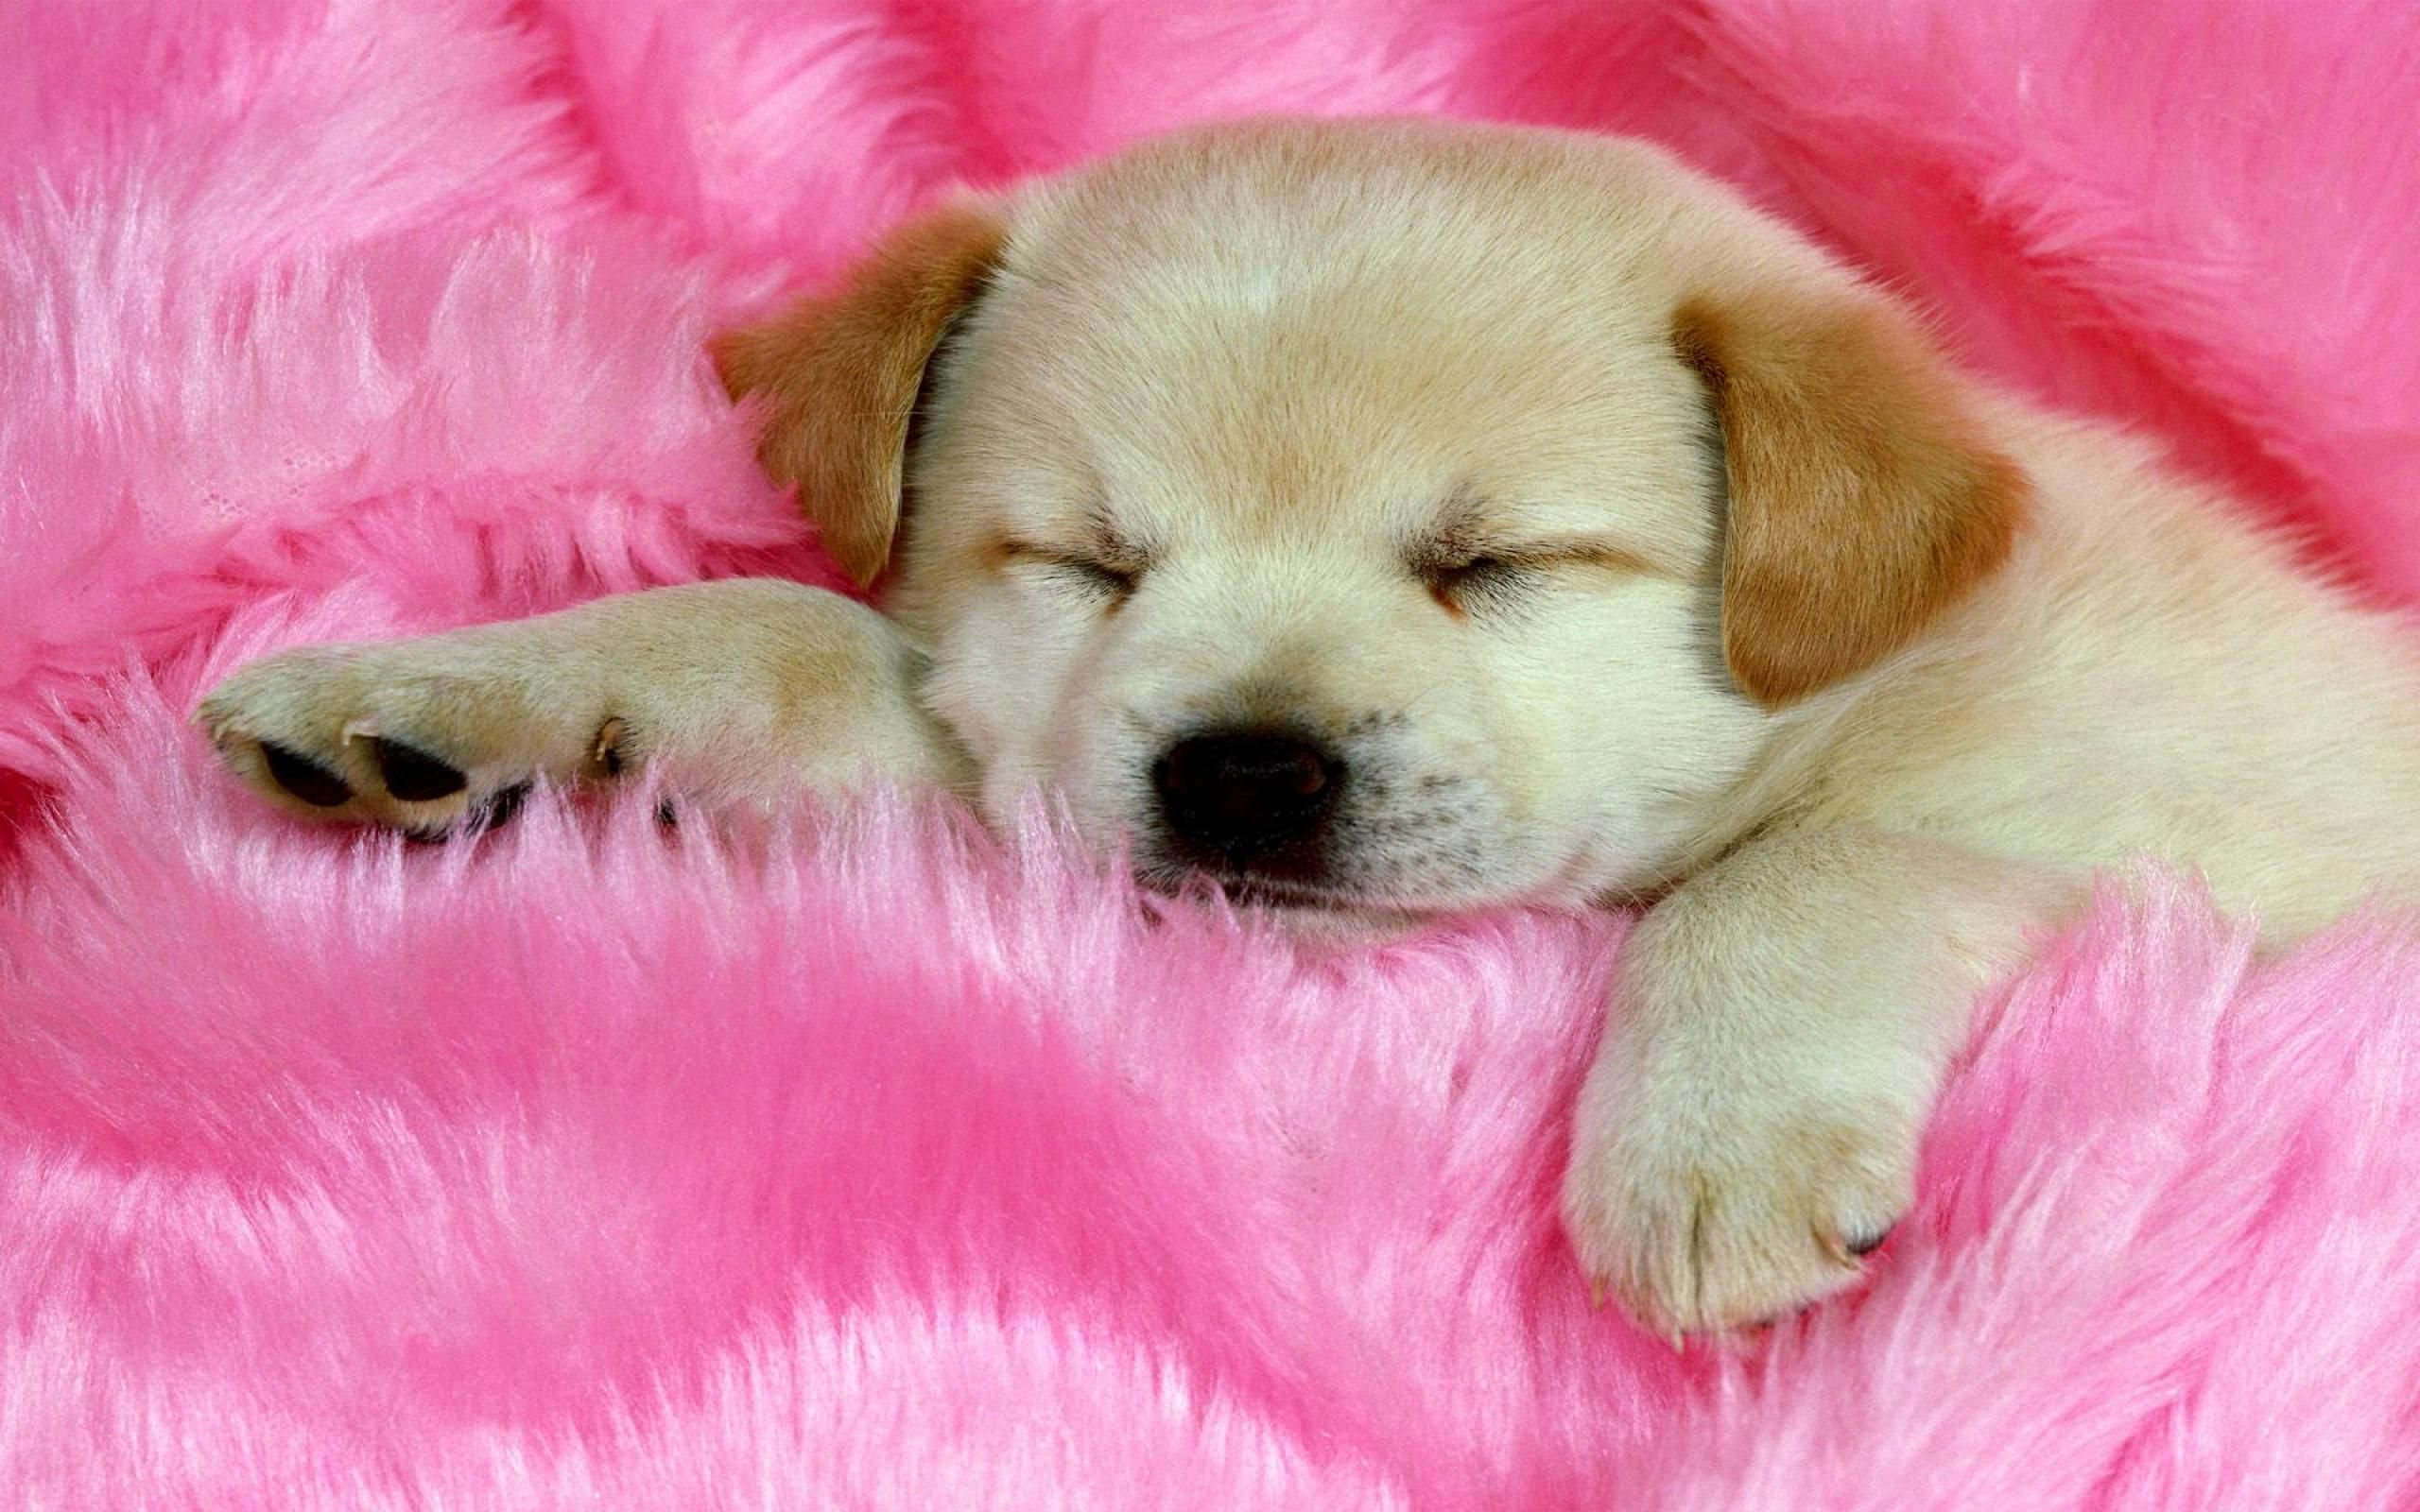 Sleeping Dog Best Wallpaper Hd Cute Dog Wallpaper Sleeping Puppies Cute Puppy Wallpaper